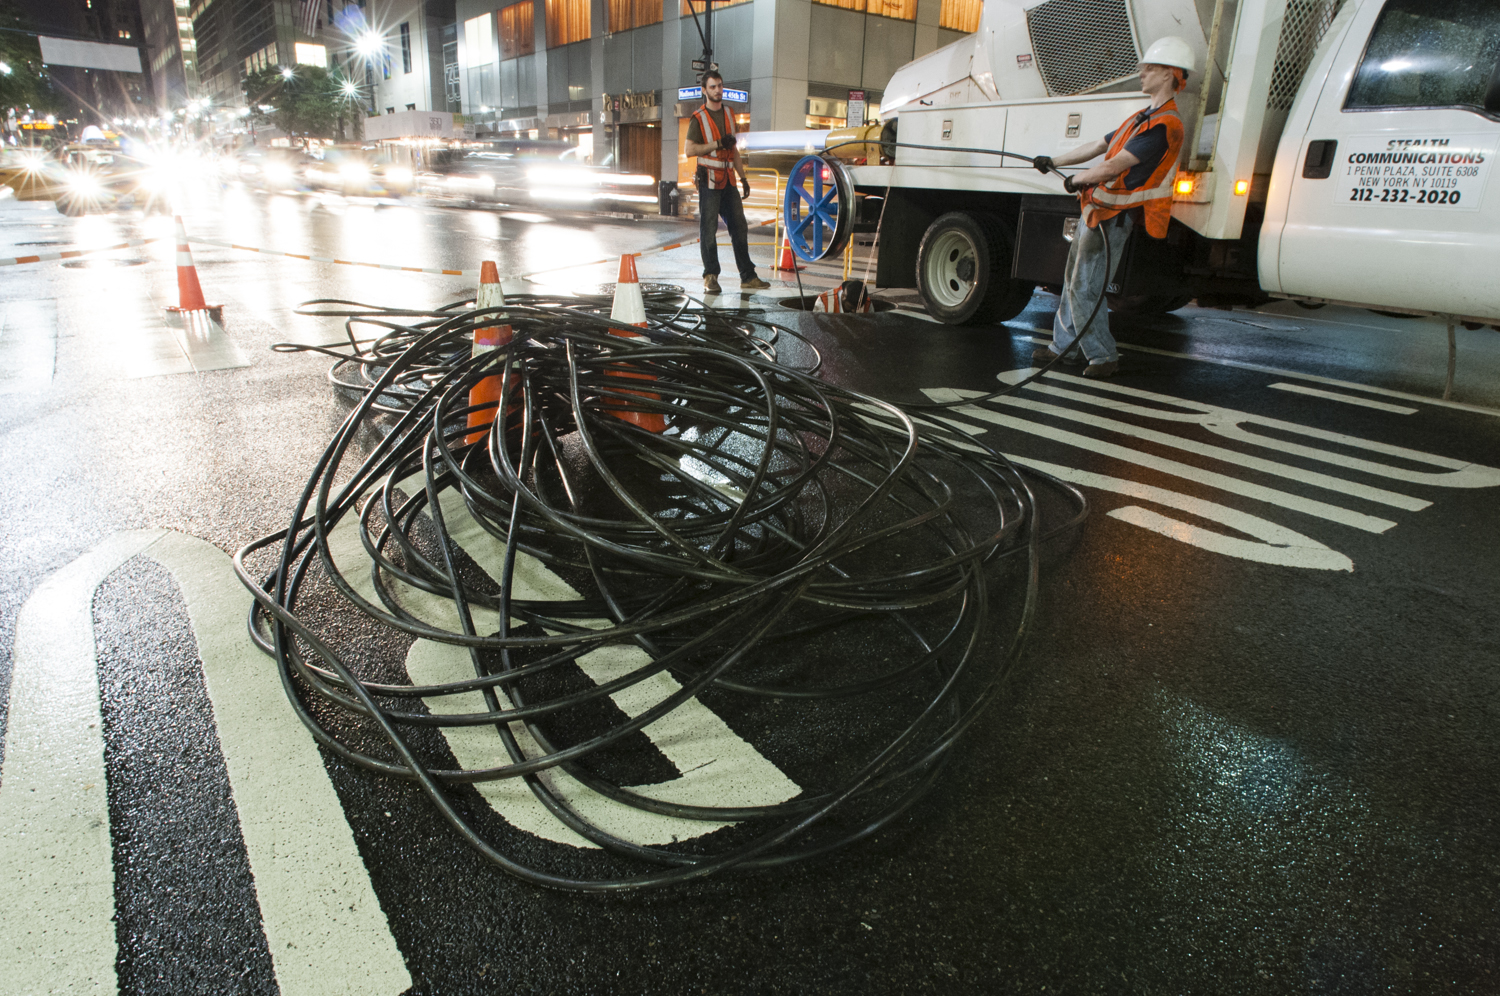 A Stealth fiber crew installs a 432-count fiber cable underneath the streets of Midtown Manhattan in 2013.